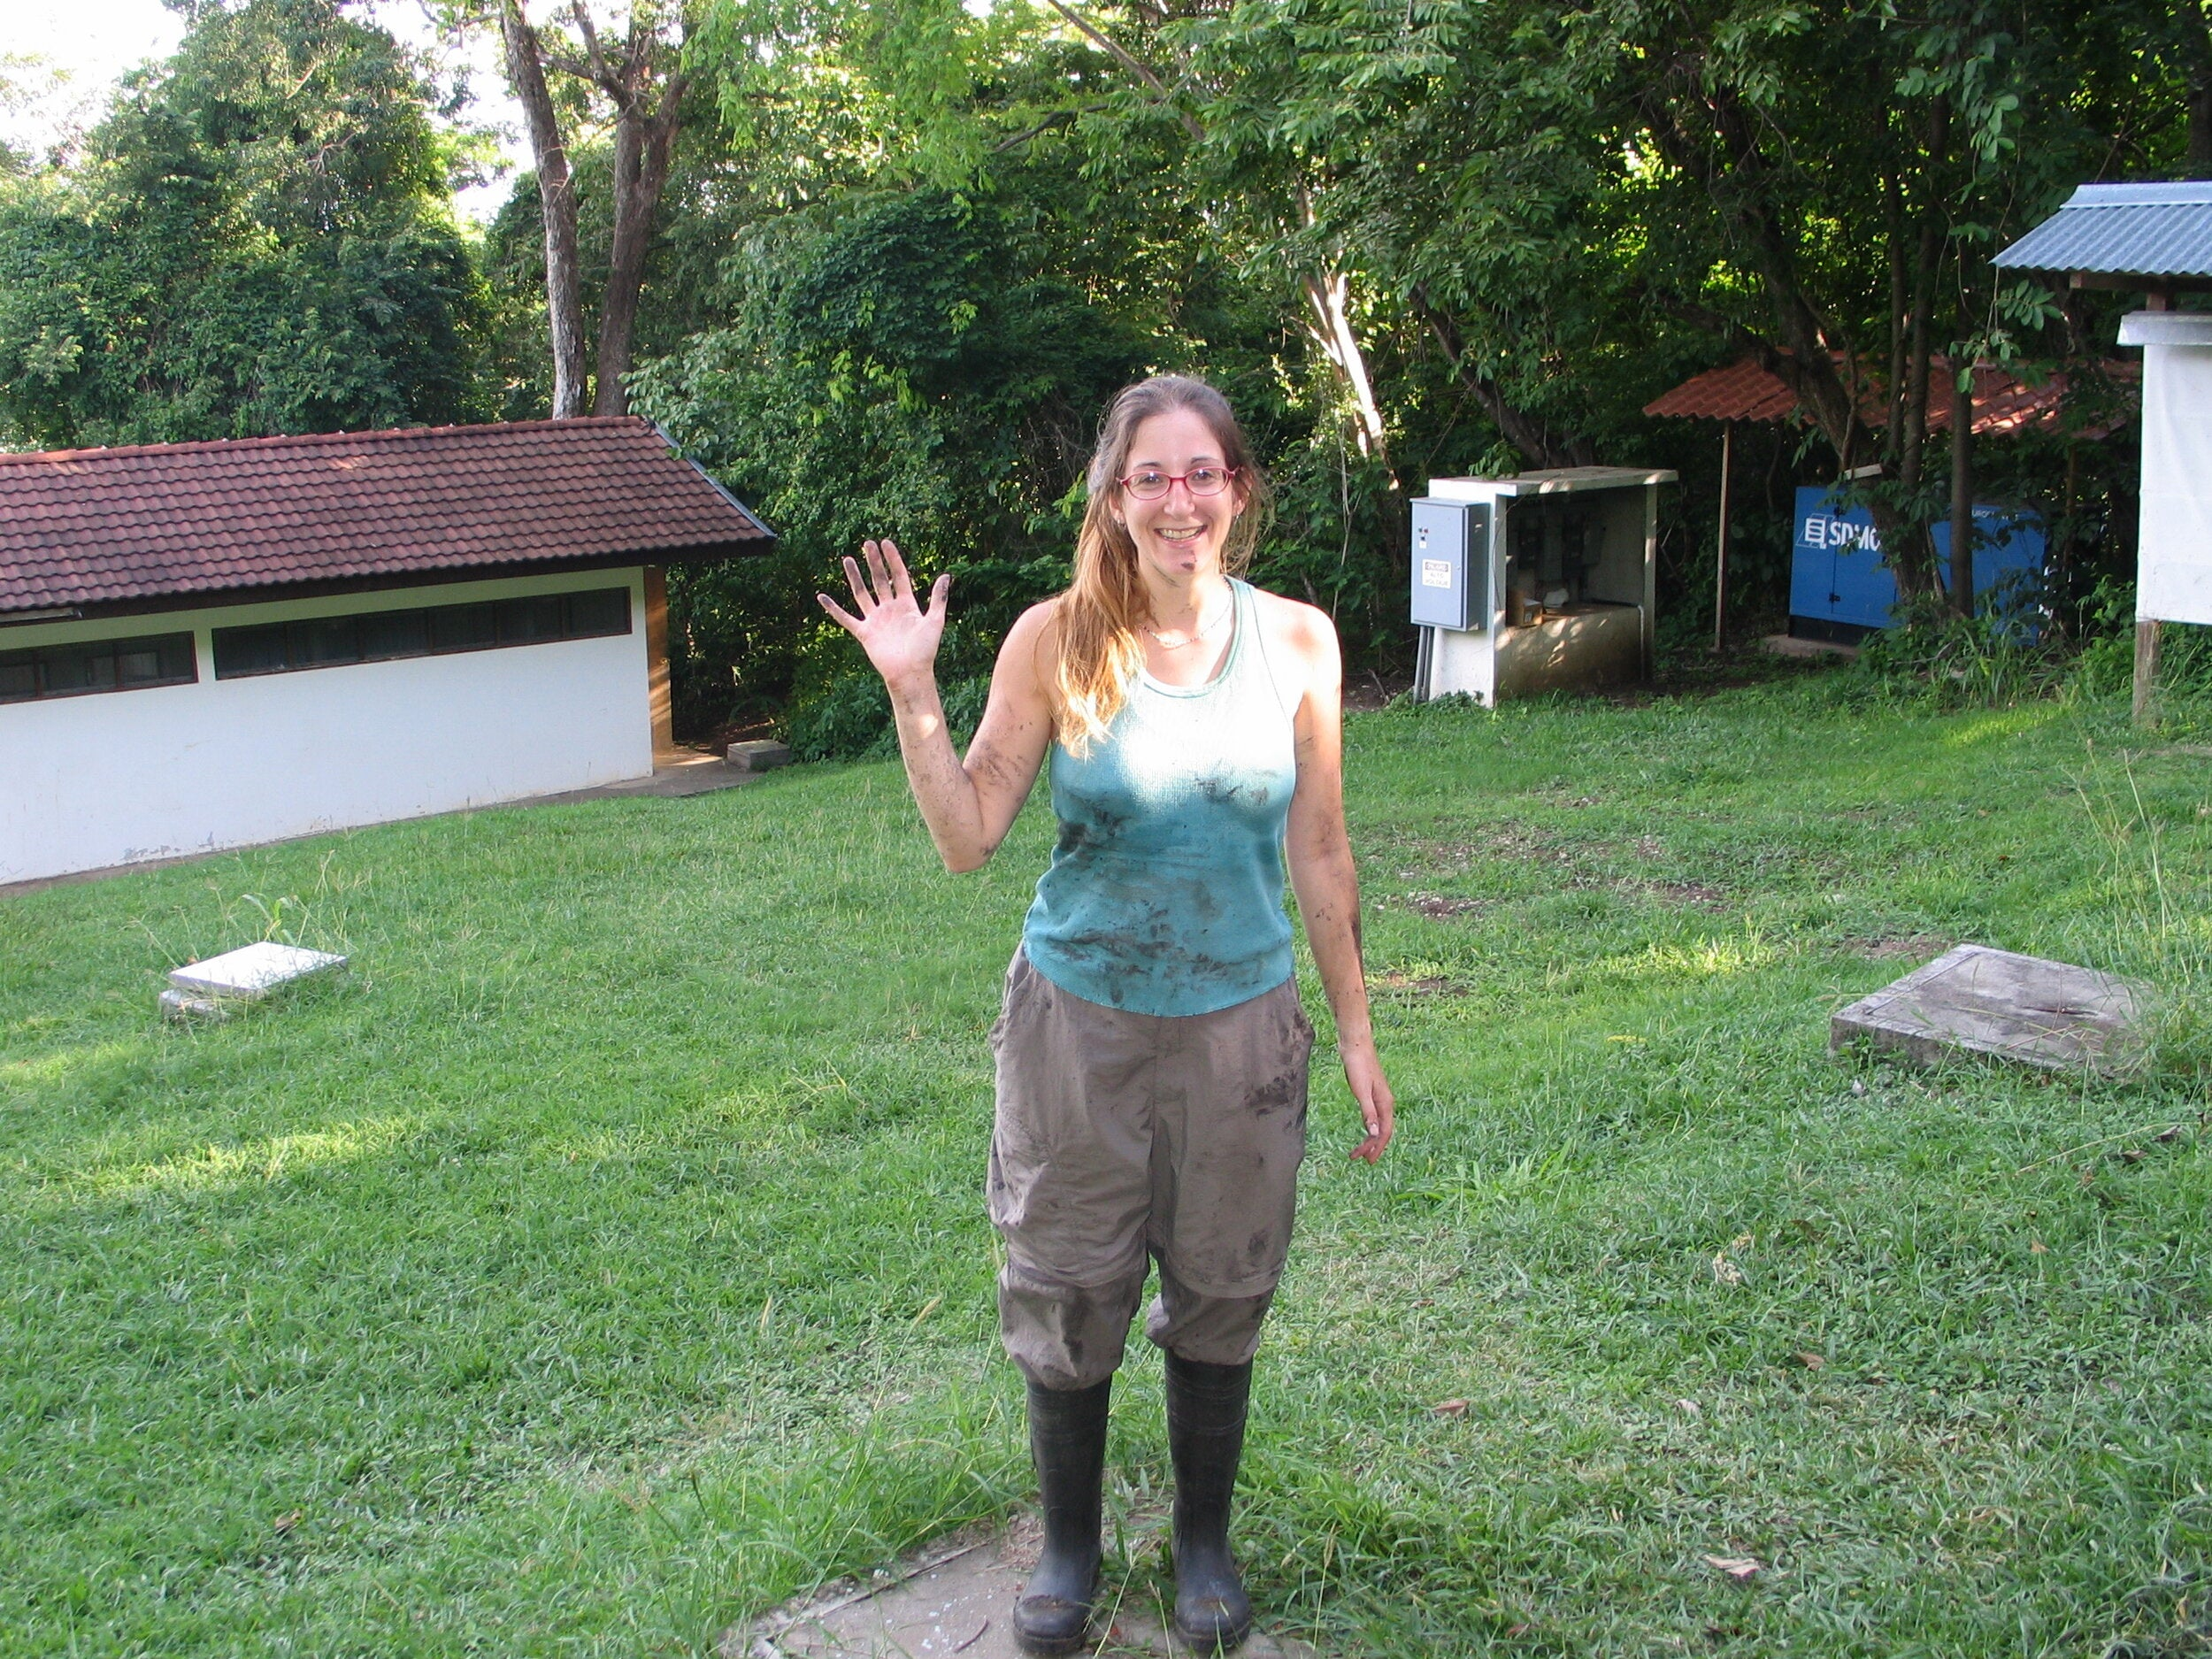 A day in the life as a field biologist